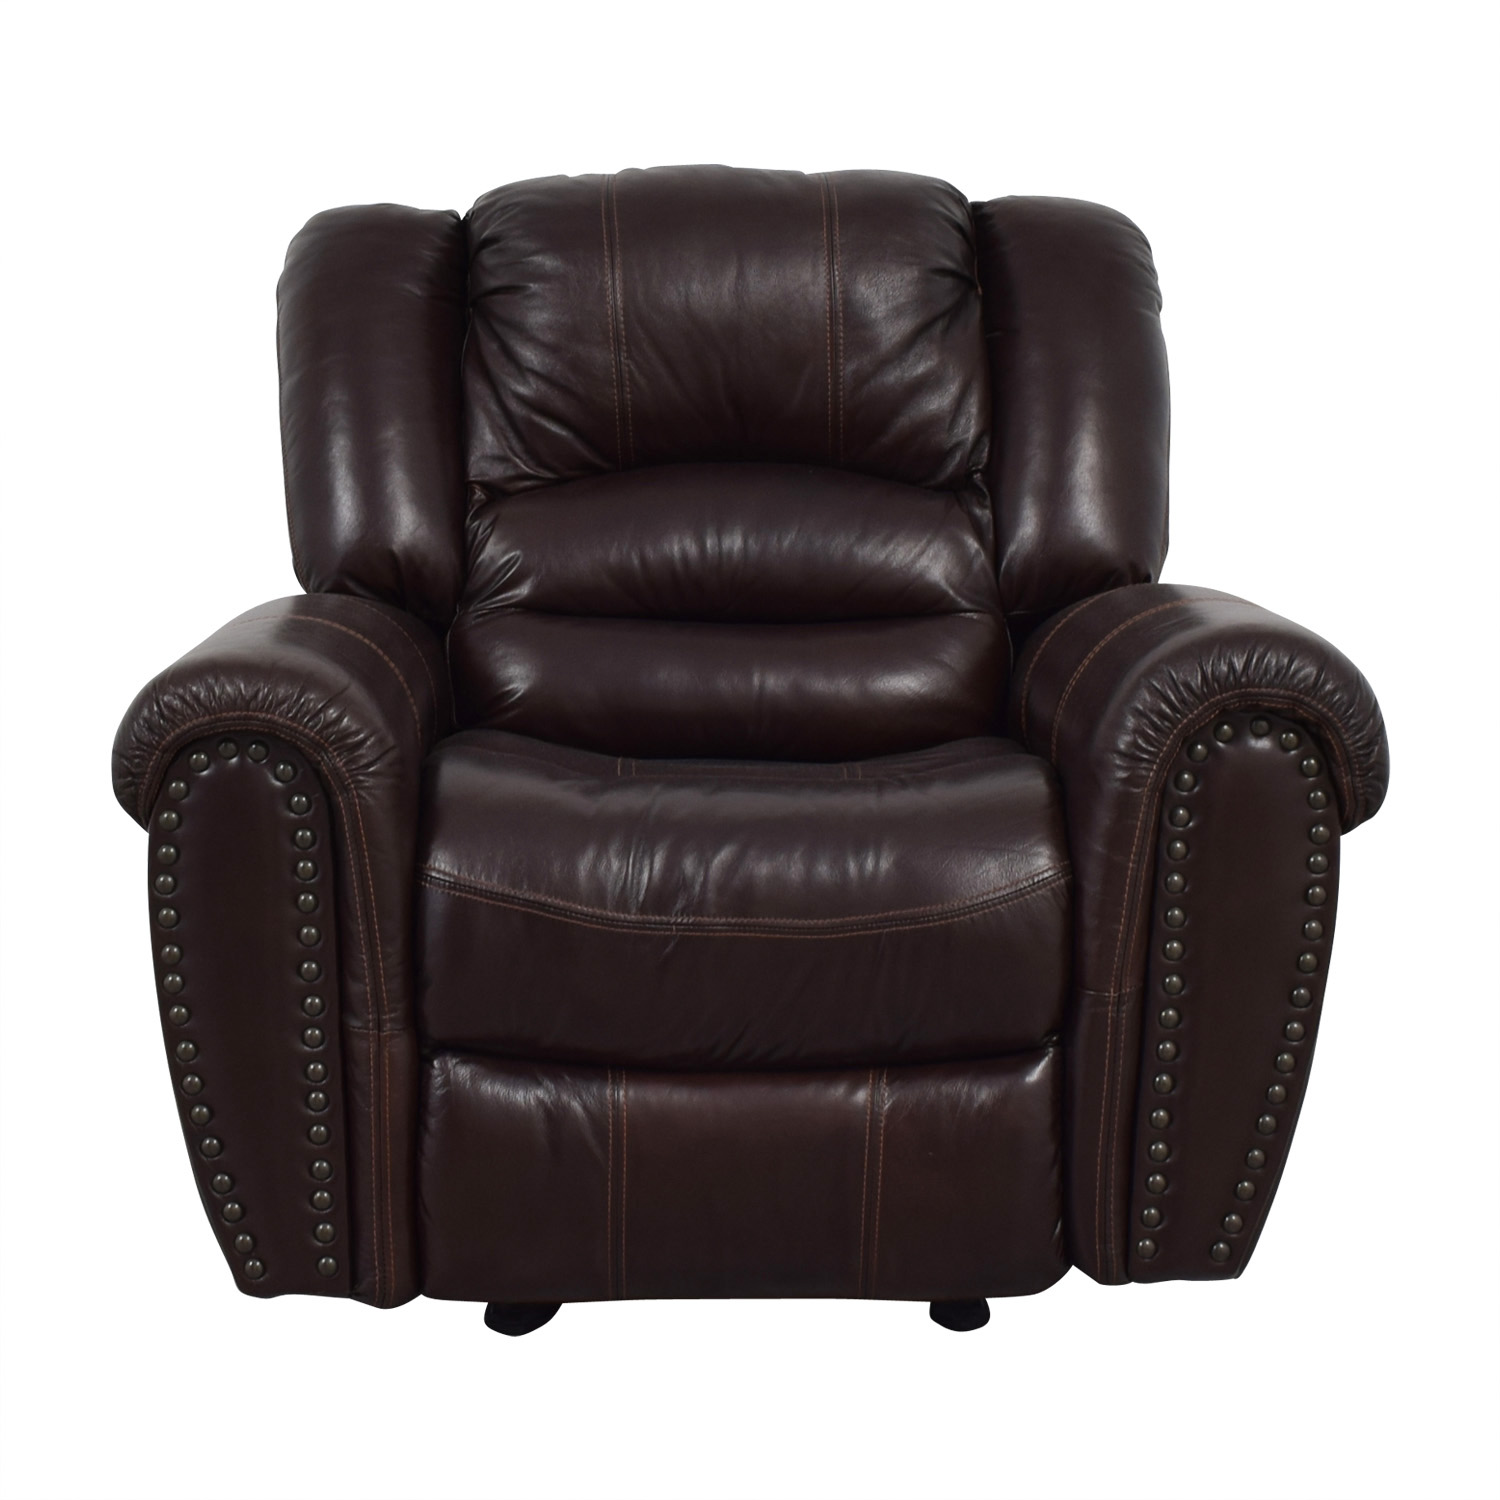 shop Raymour u0026 Flanigan Dark Brown Leather Rocker Recliner Raymour u0026 Flanigan  sc 1 st  Furnishare & Recliners: Used Recliners for sale